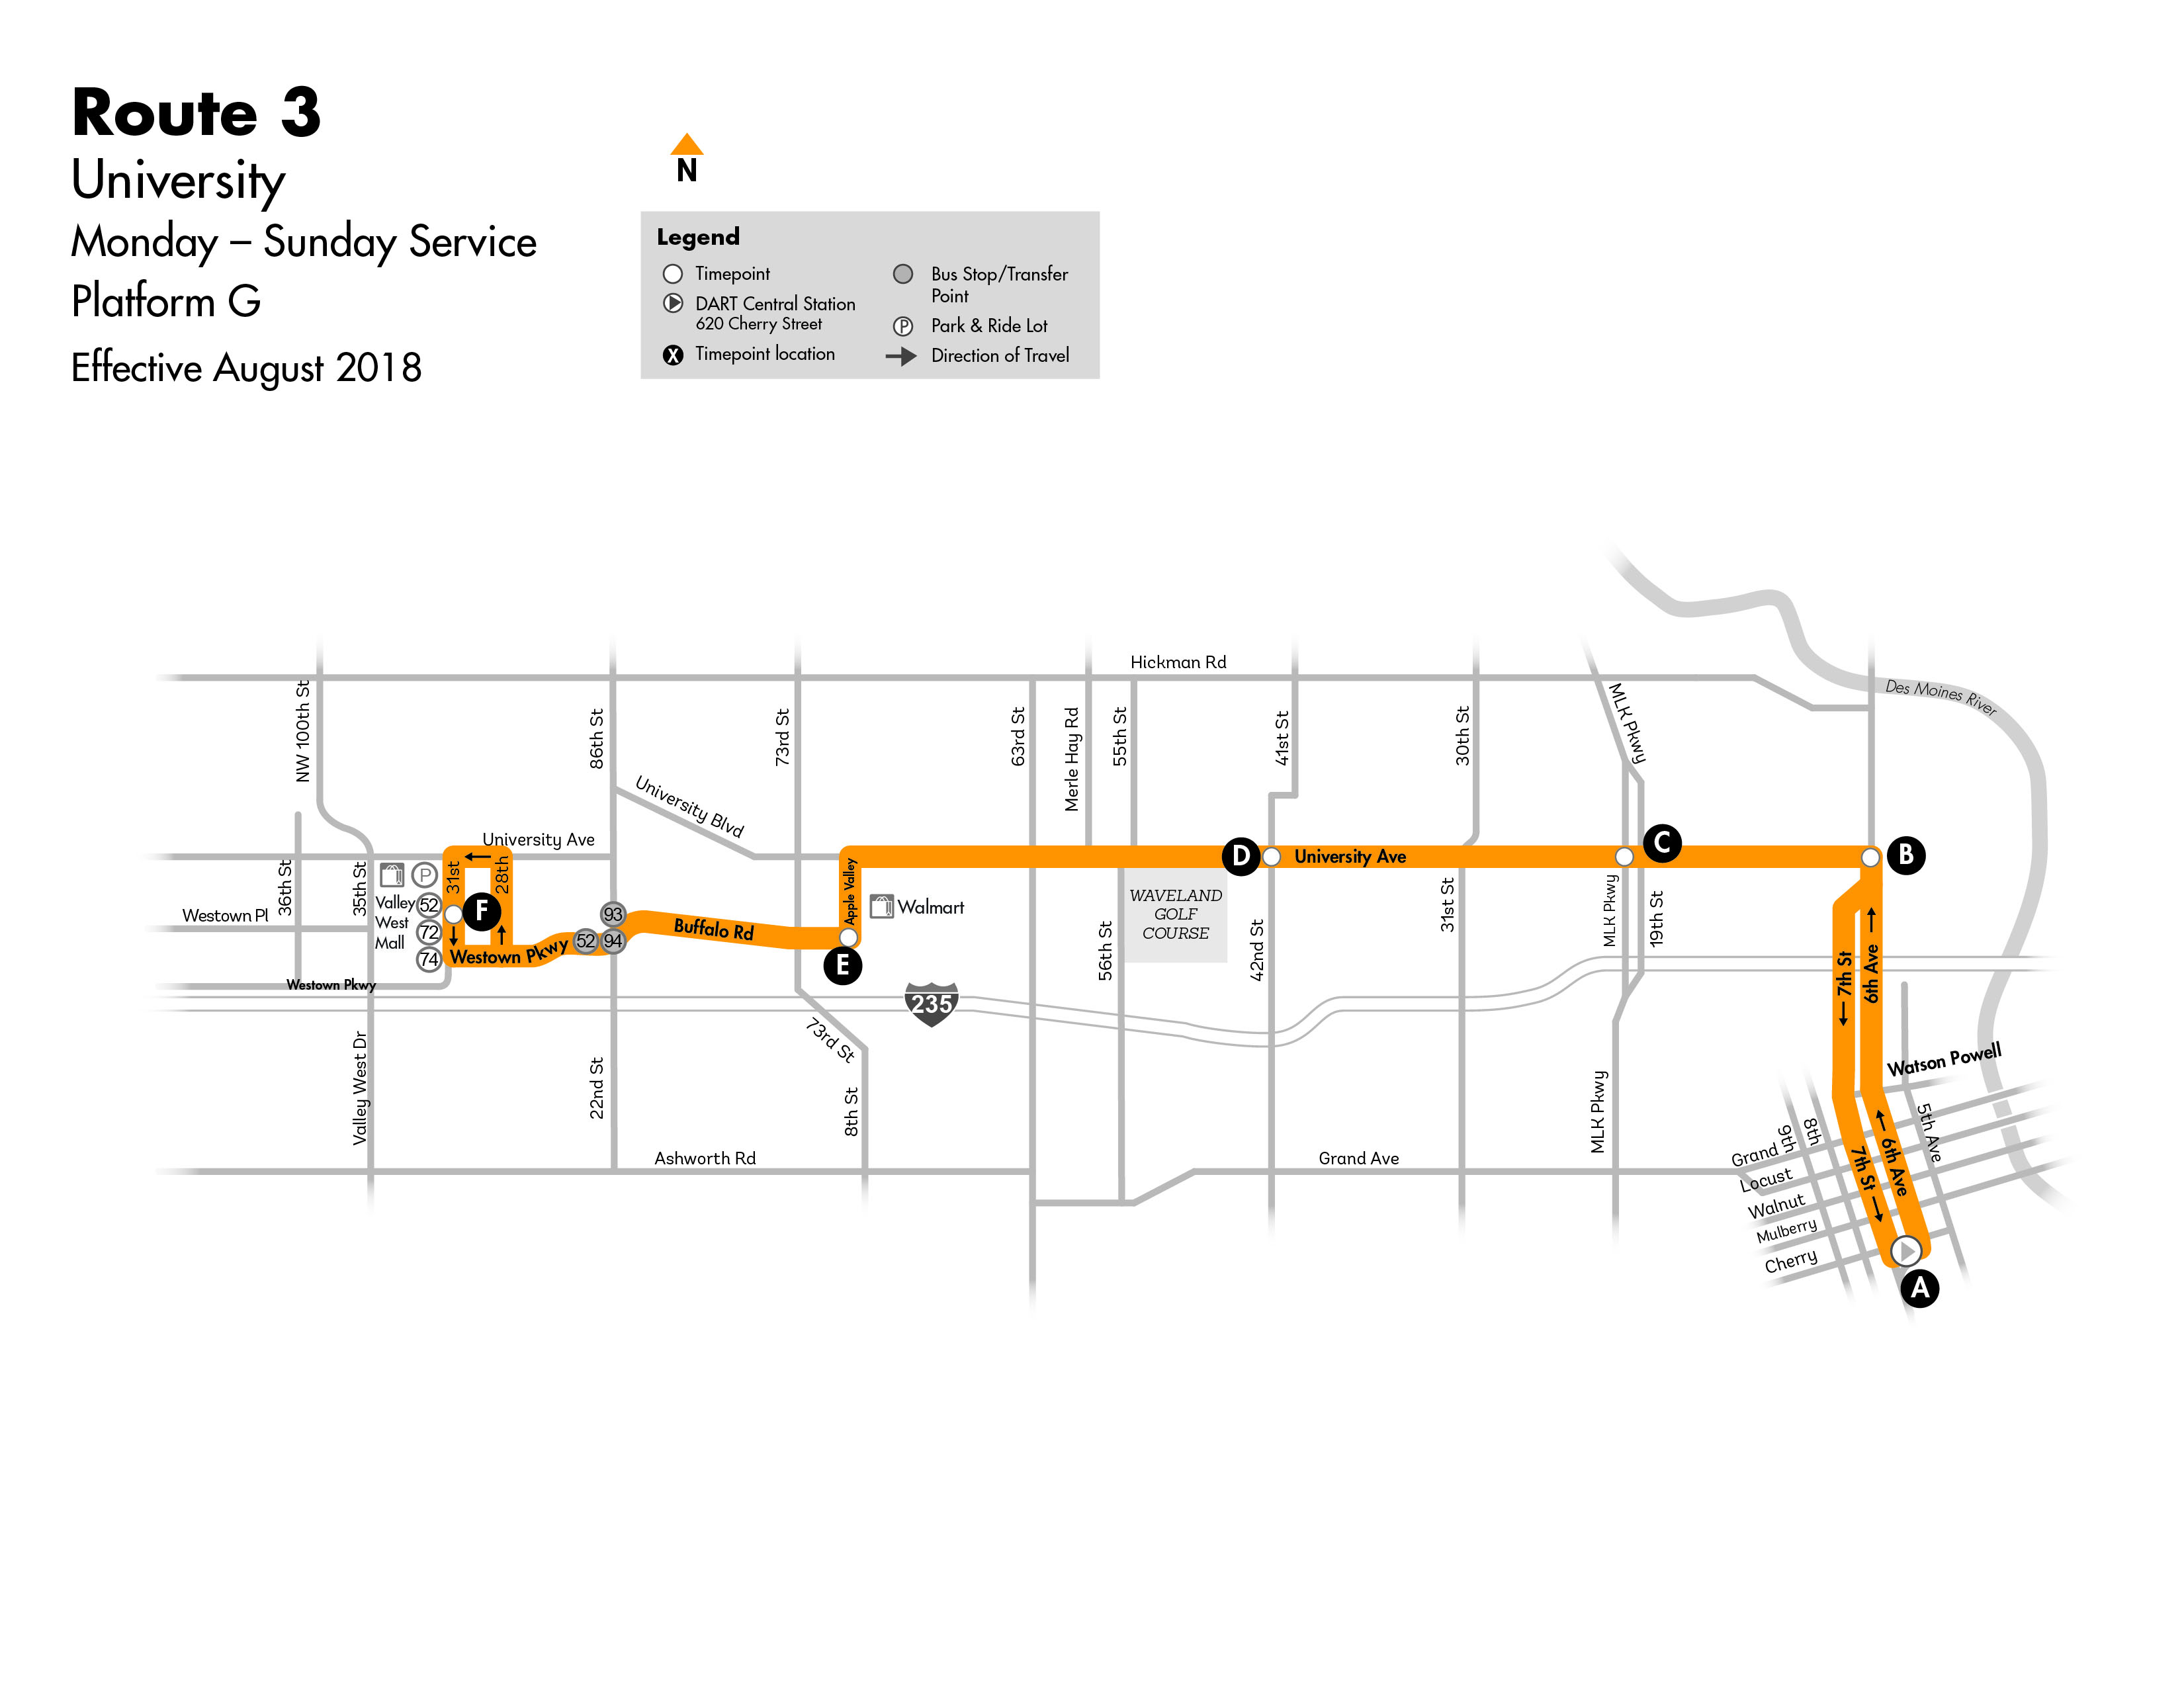 DART Local Route 3 - University Map